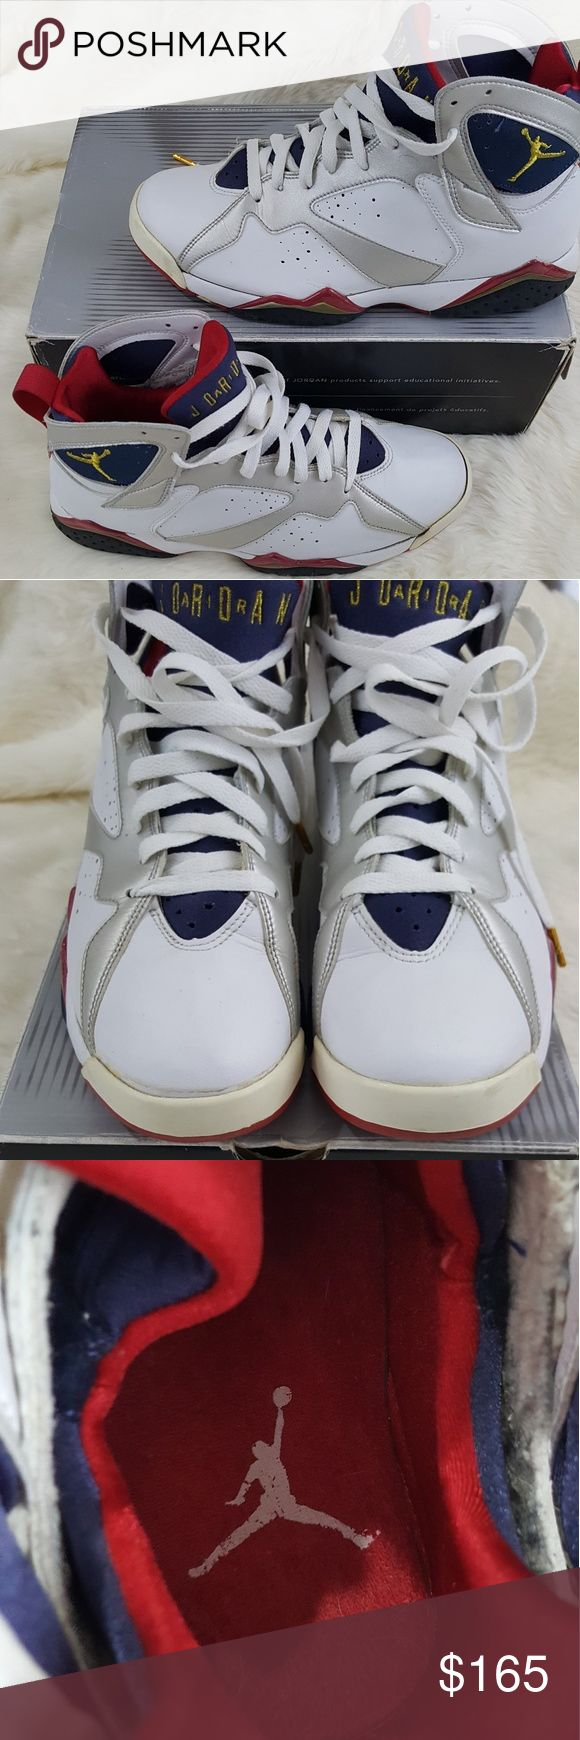 Jordan retro olympic 7 Jordan Olympic 7 in pre owned condition,  the soles will need to be re glued due to old age the shoes are from 2004 and come with the original box. There is some yellowing due to age and creases from normal wear but overall in decent shape Jordan Shoes Sneakers